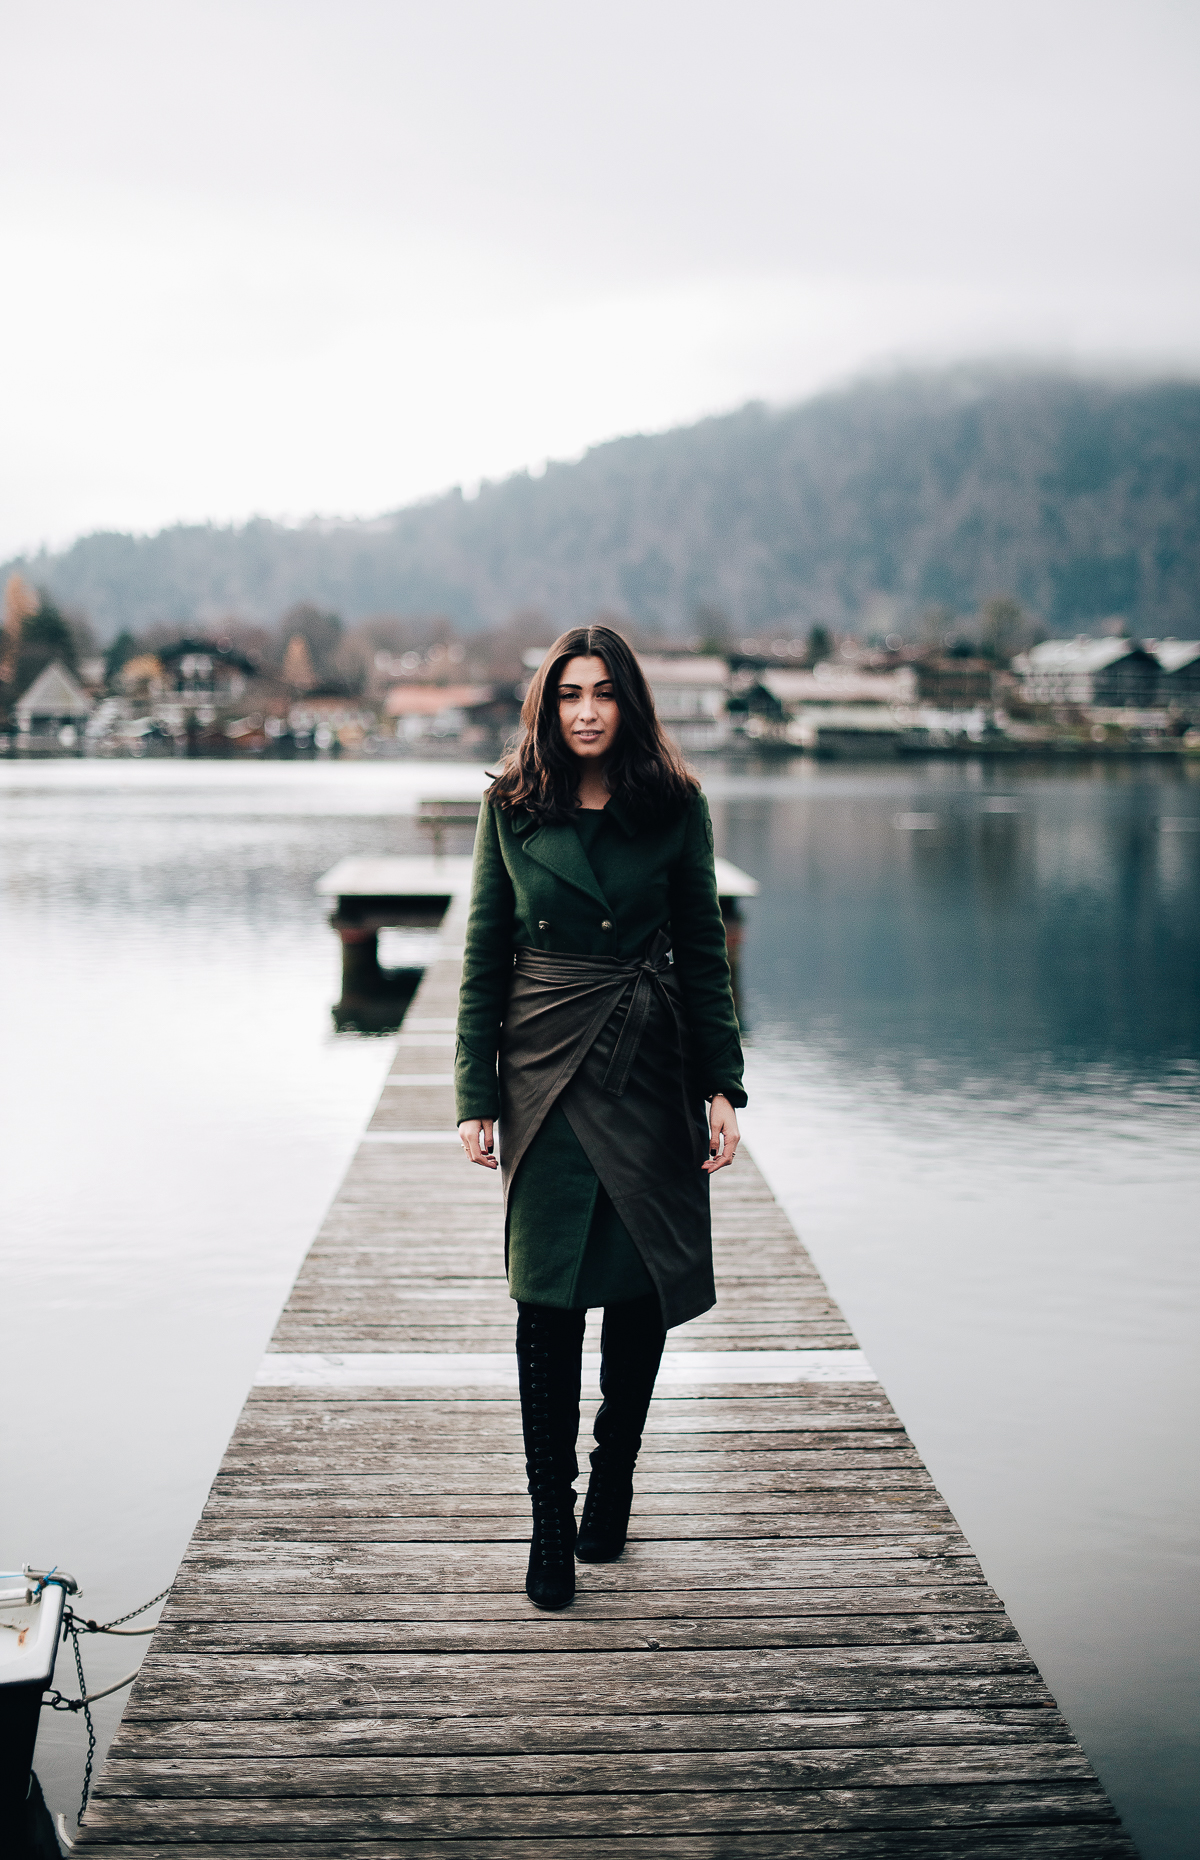 blauer usa - tegernsee - idyllicmoments - woolcoat - militarychic - laceupoverknees - ootd - thecliquesuite - tannengrün - longcoat - lederrock - ted & muffy - seeblick